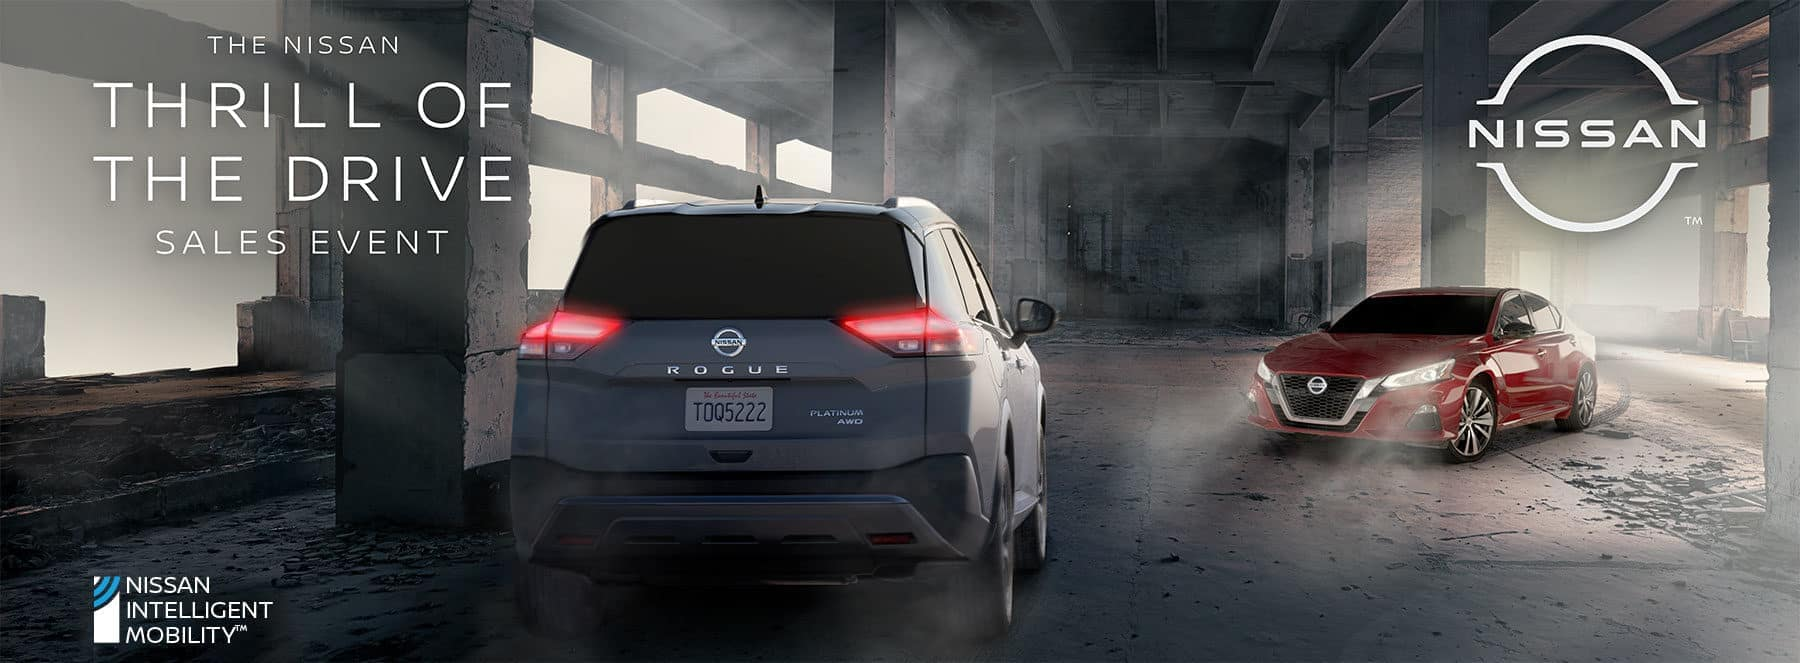 Nissan-Thrill_OF_The_Drive-1800×663